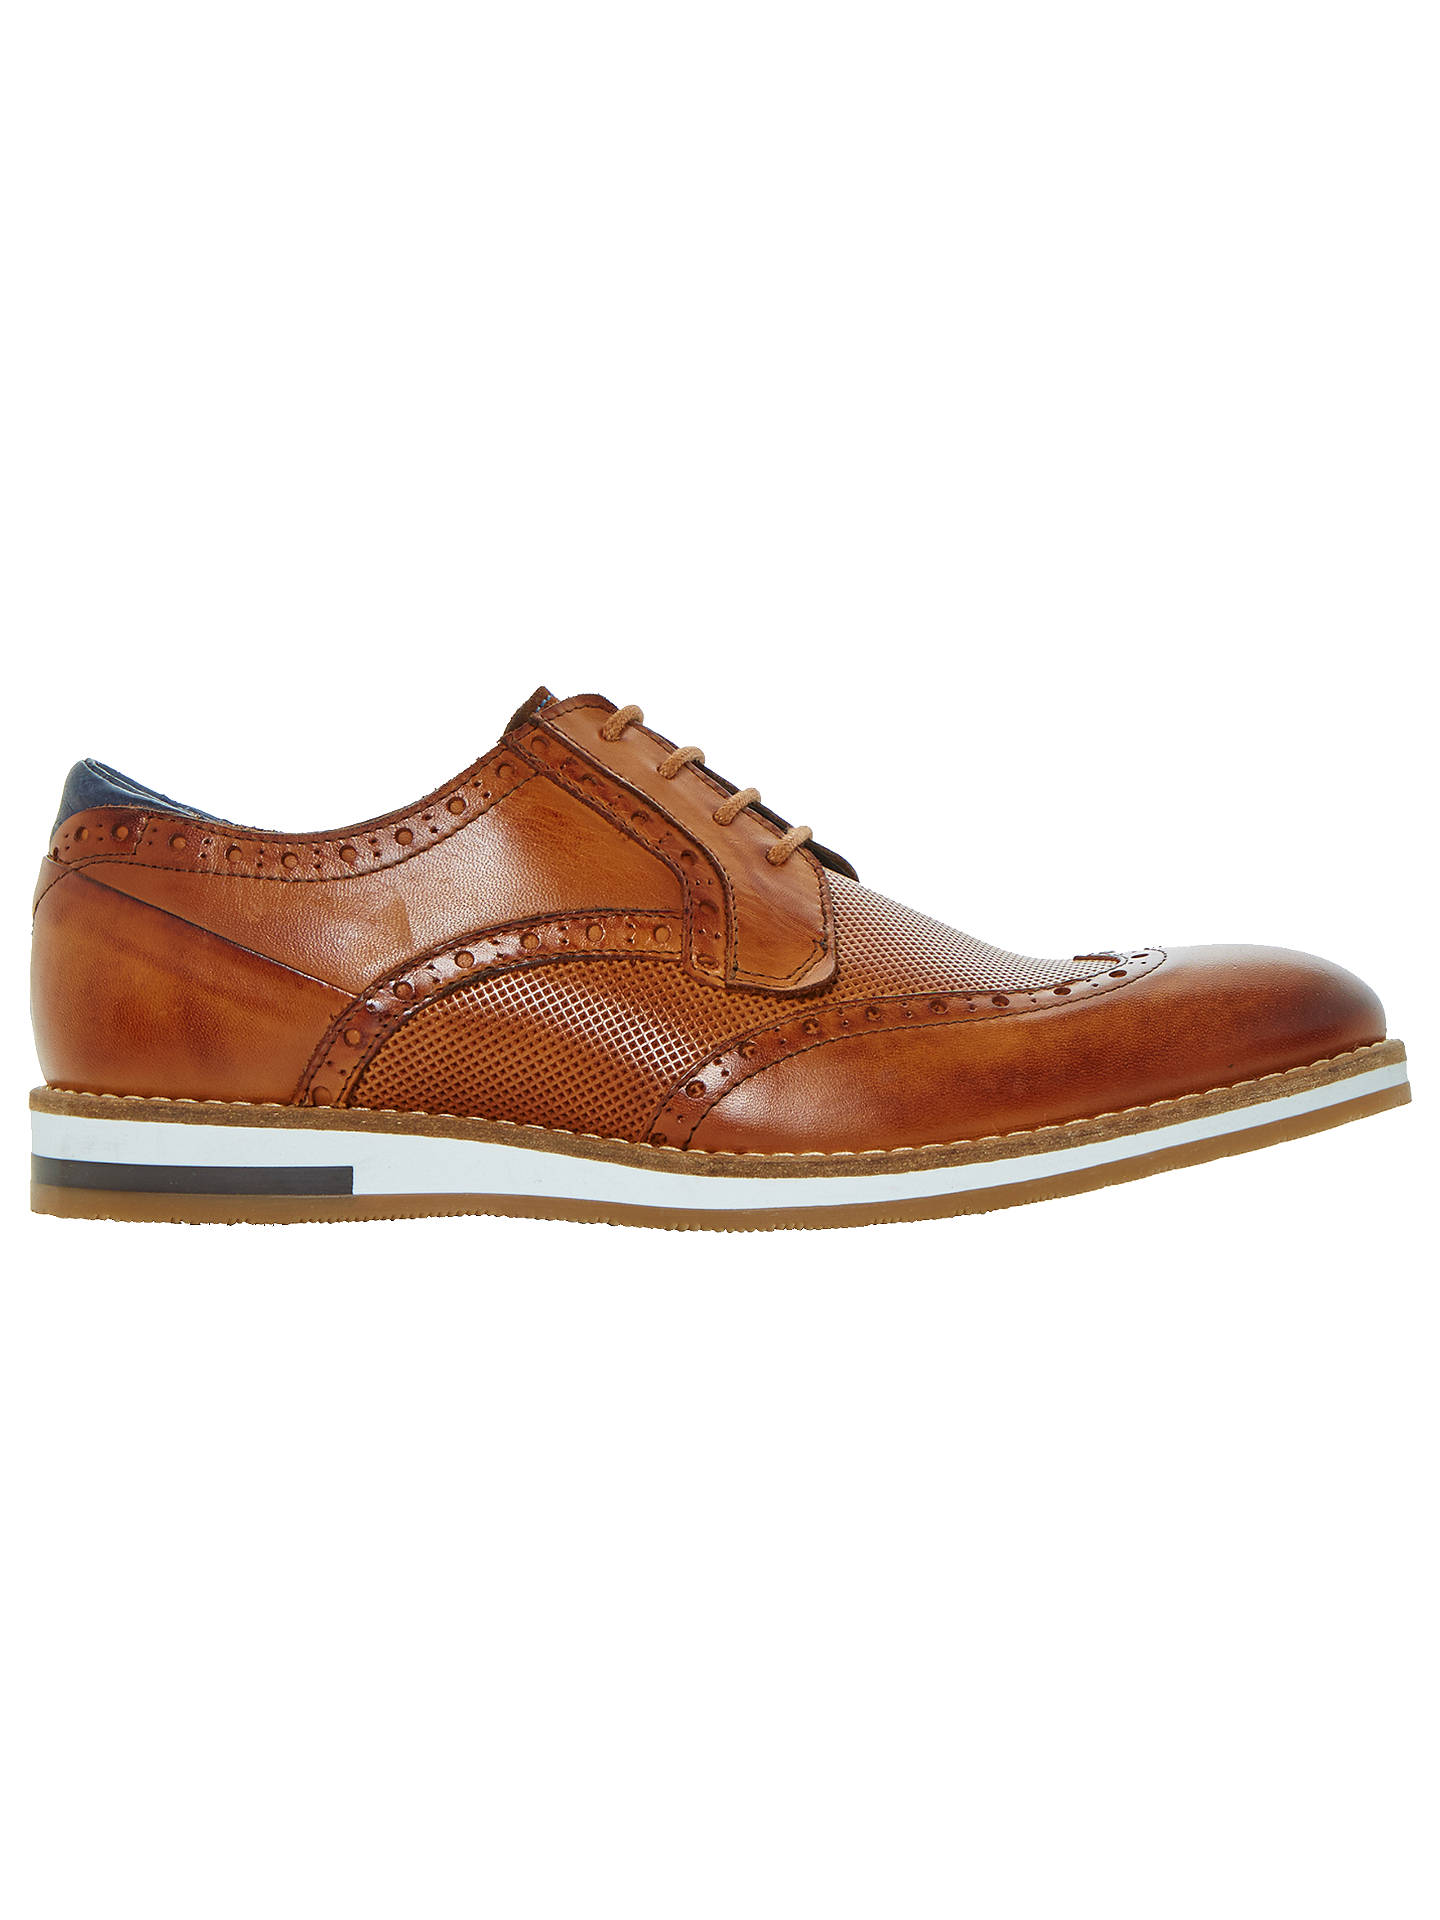 Buy Bertie Baker Hill Gibson Leather Wingtip Shoes, Tan Leather, 9 Online at johnlewis.com